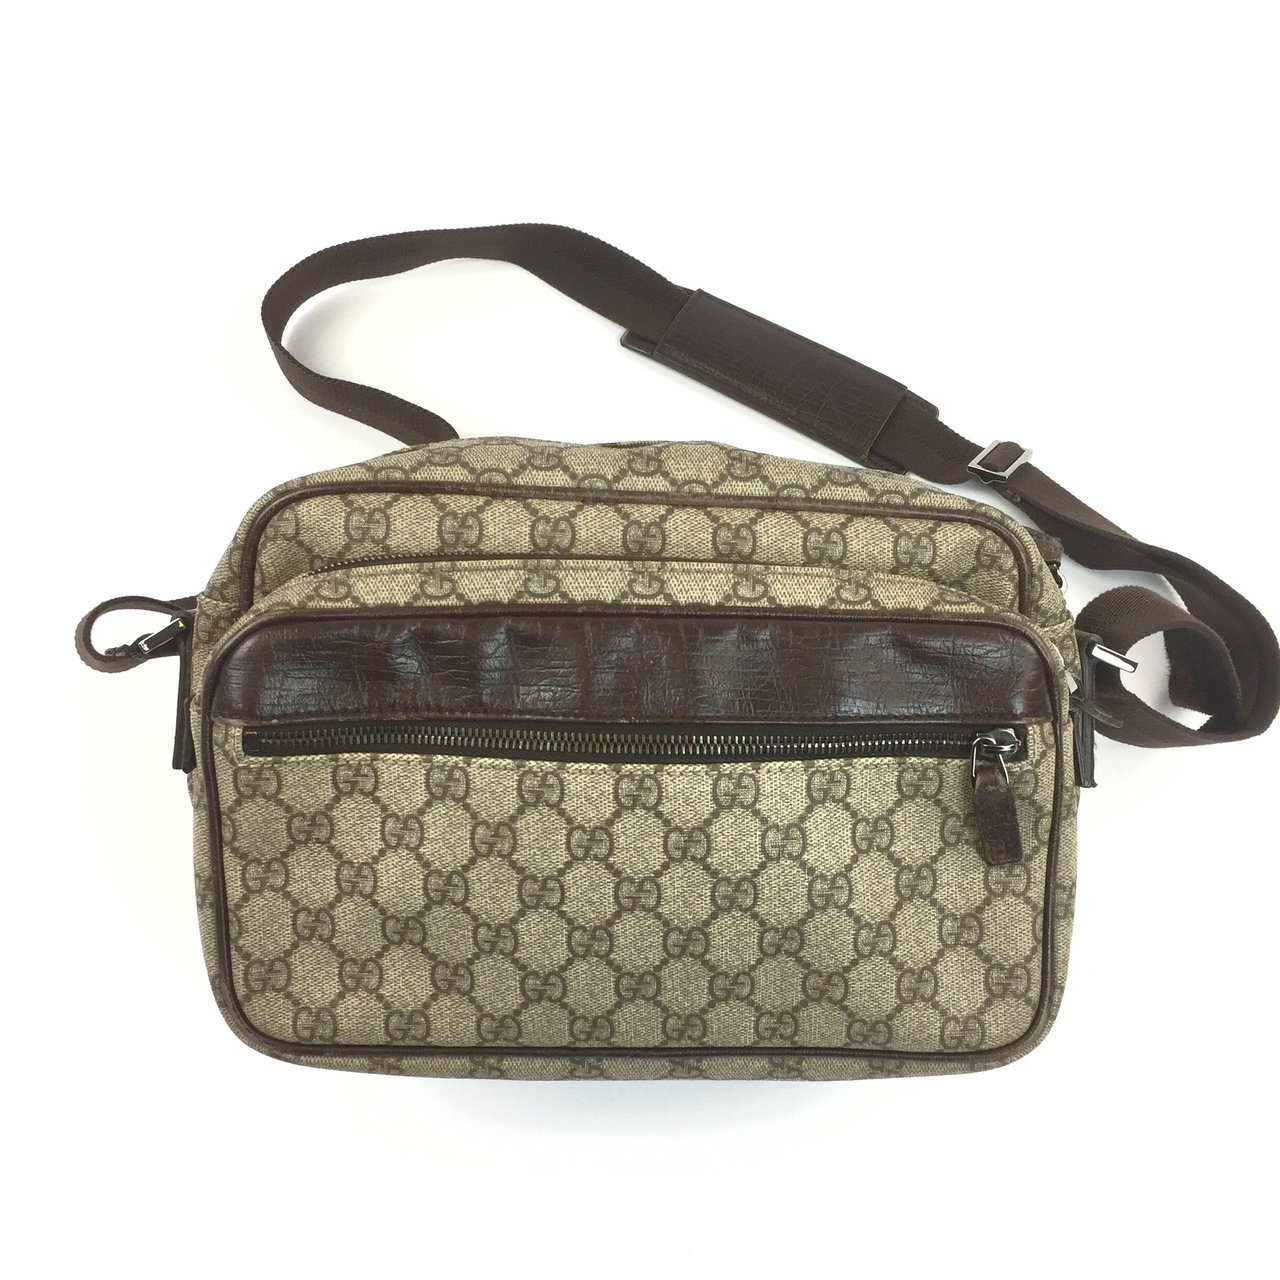 32a22a42a15  oliversarchive. last year. United Kingdom. Authentic Gucci PVC Canvas Cross  Body Messenger Bag ...